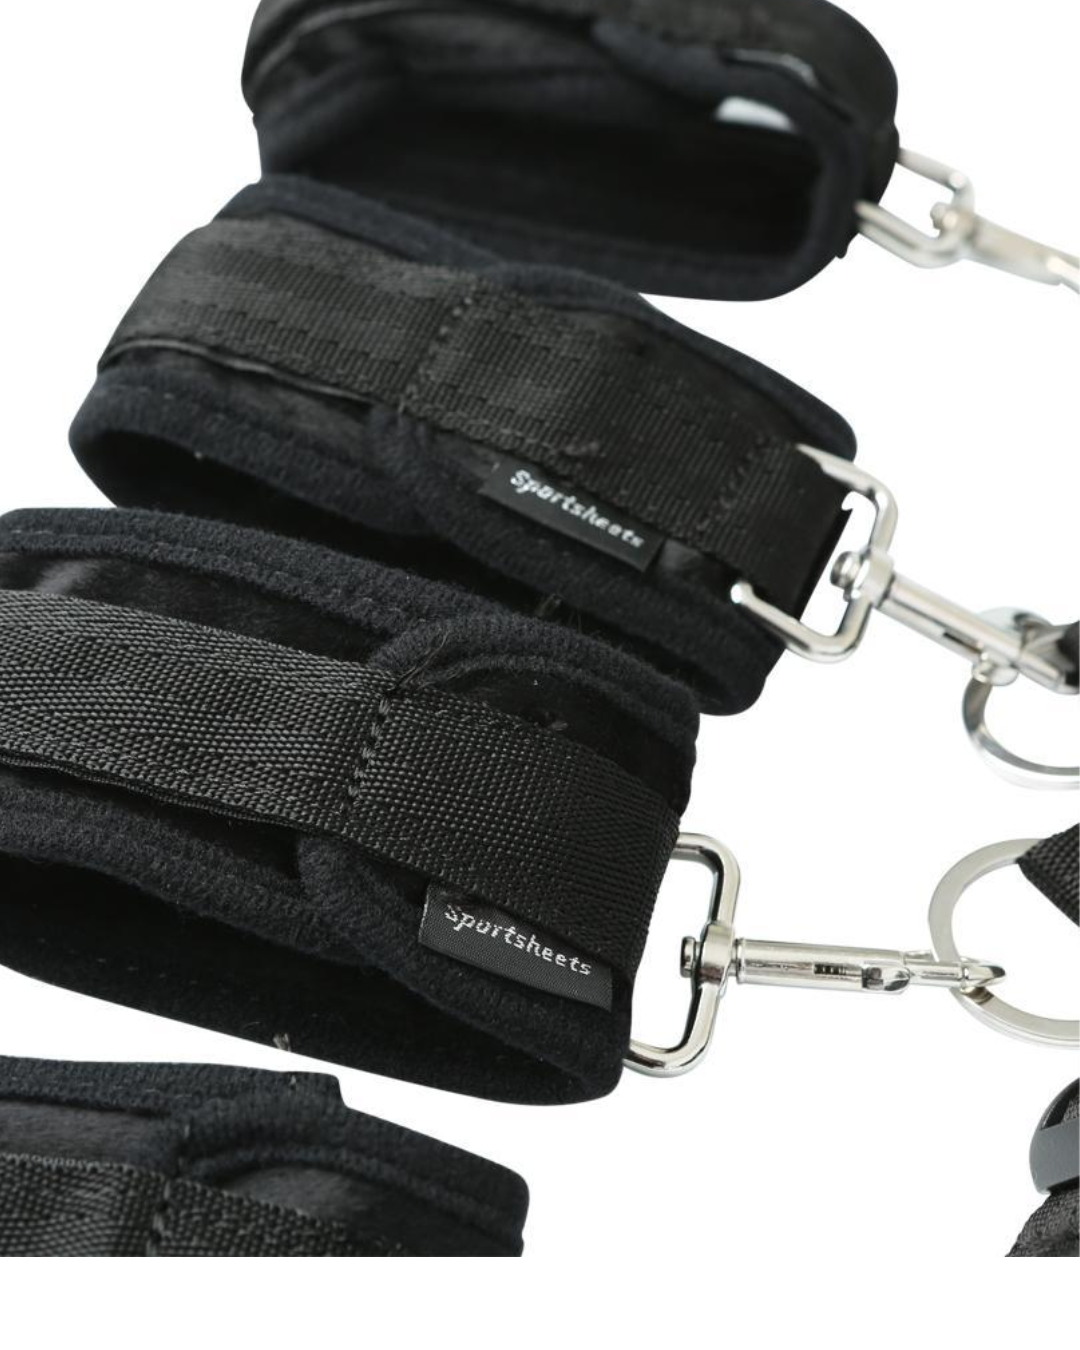 Sportsheets Under the Bed Restraint System showing close up of cuffs